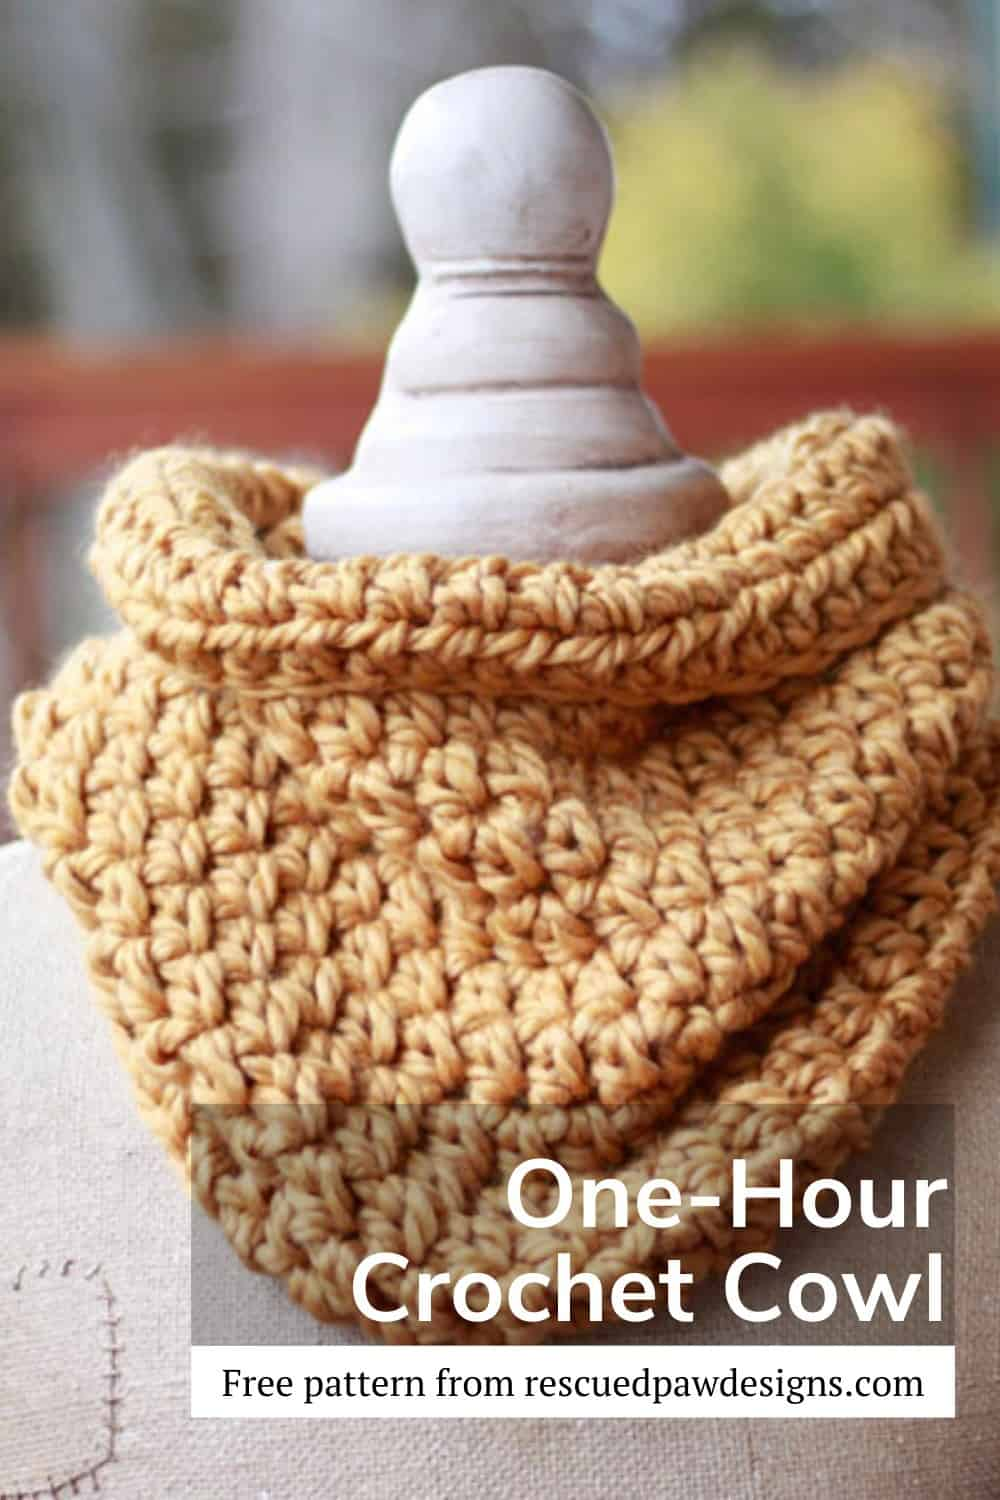 Easy and free crochet cowl pattern that only takes one hour to make! via @rescuedpaw